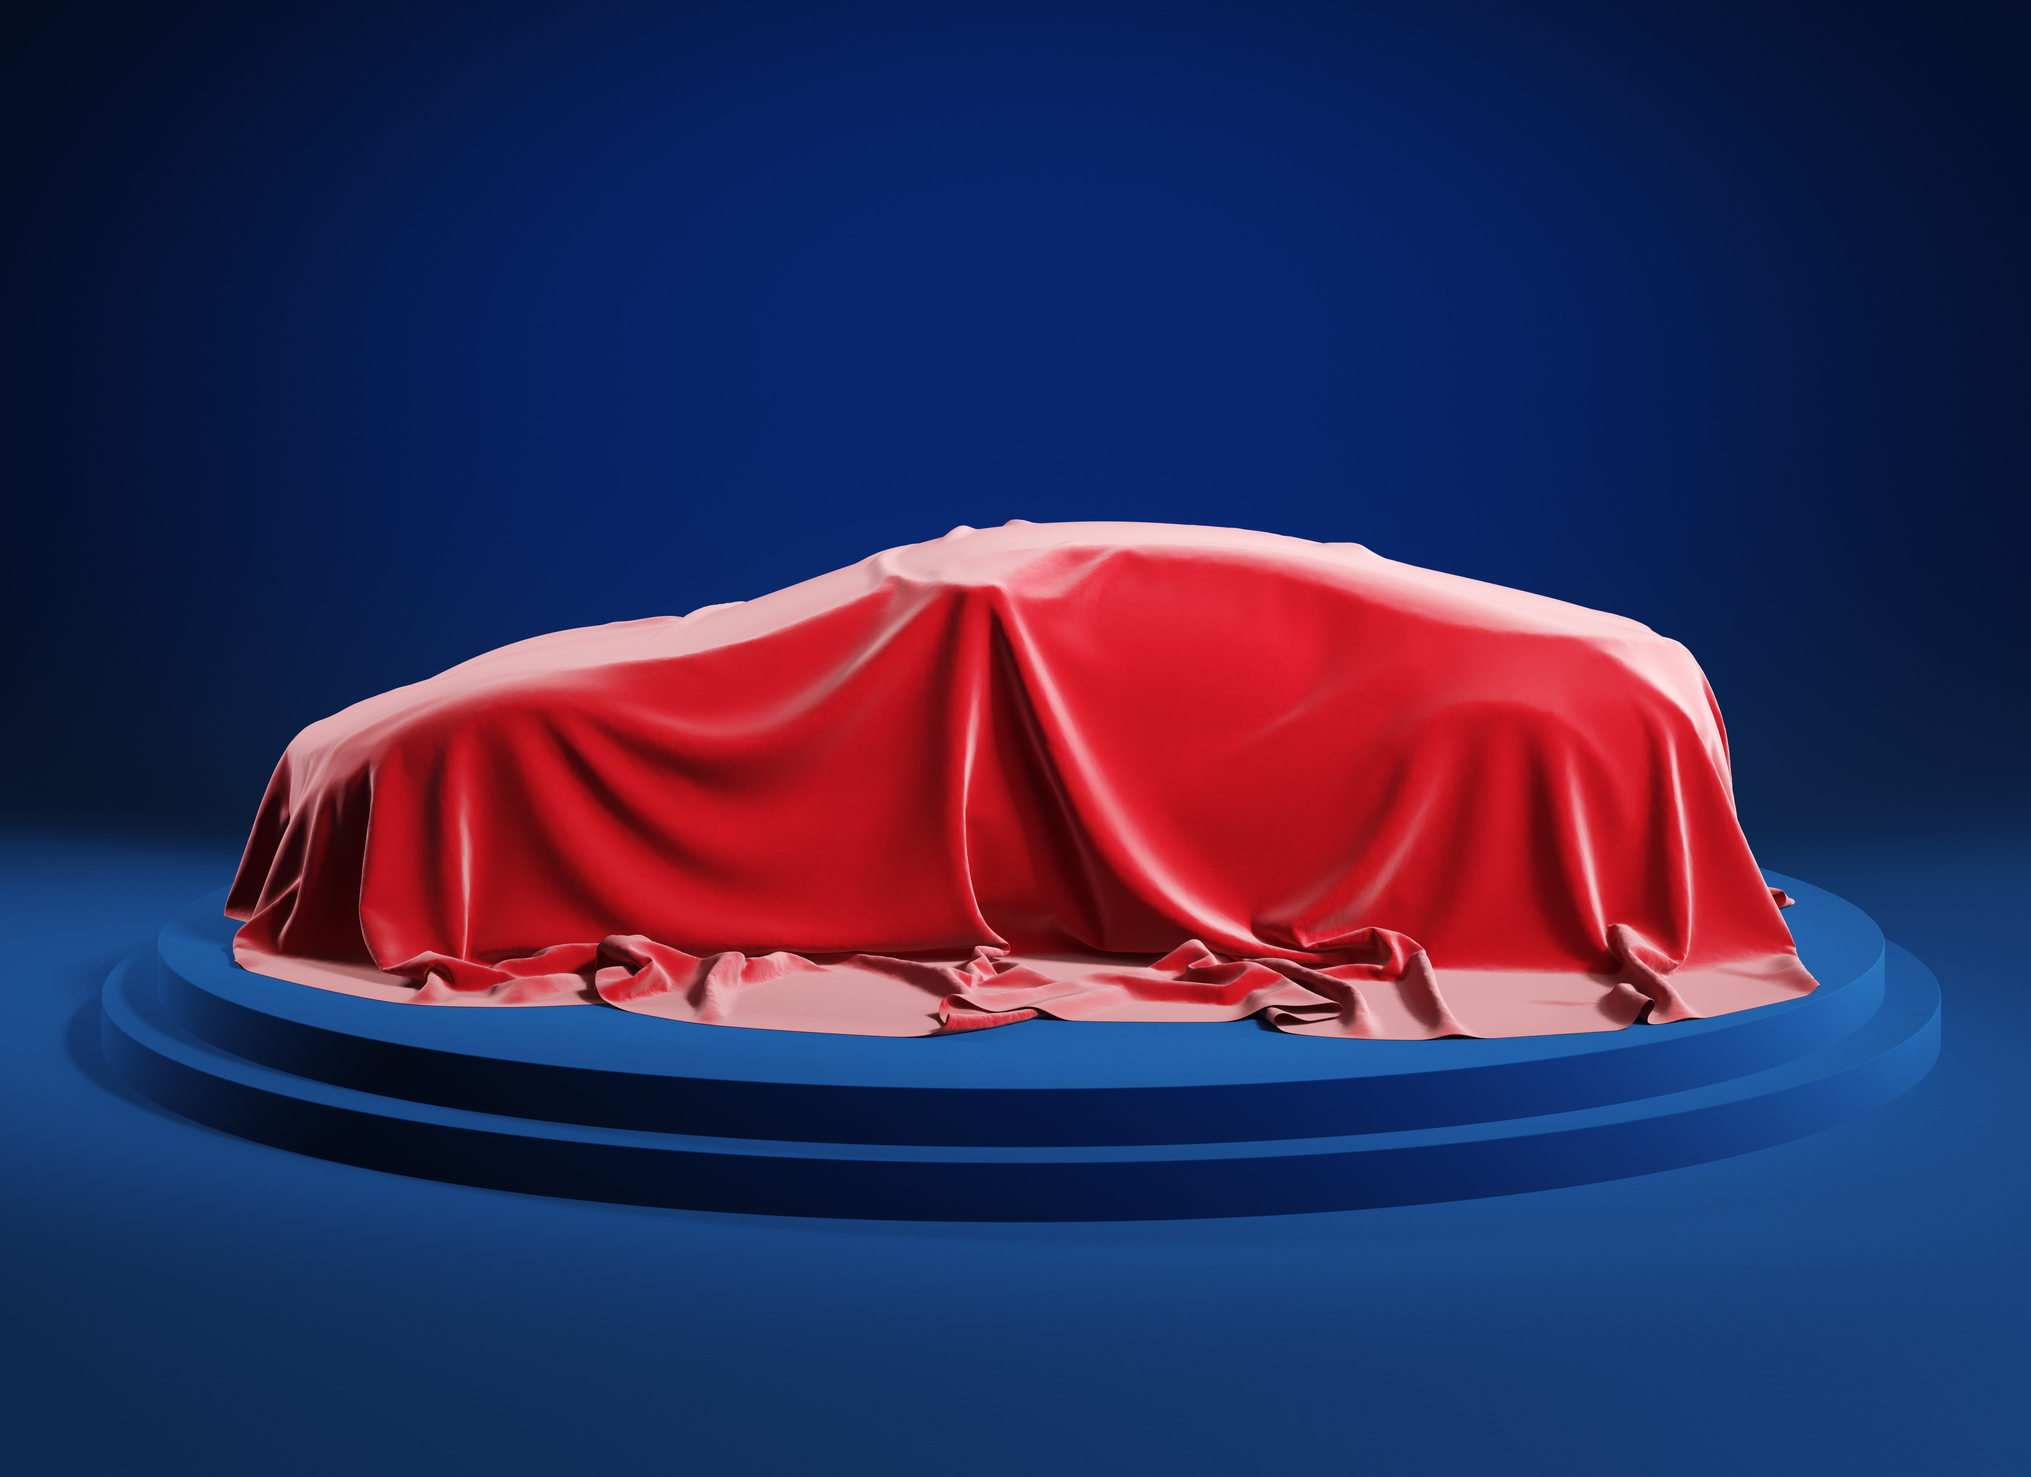 Car on the podium covered with a red satin cloth before presentation. Clipping path incluted. 3d illustration